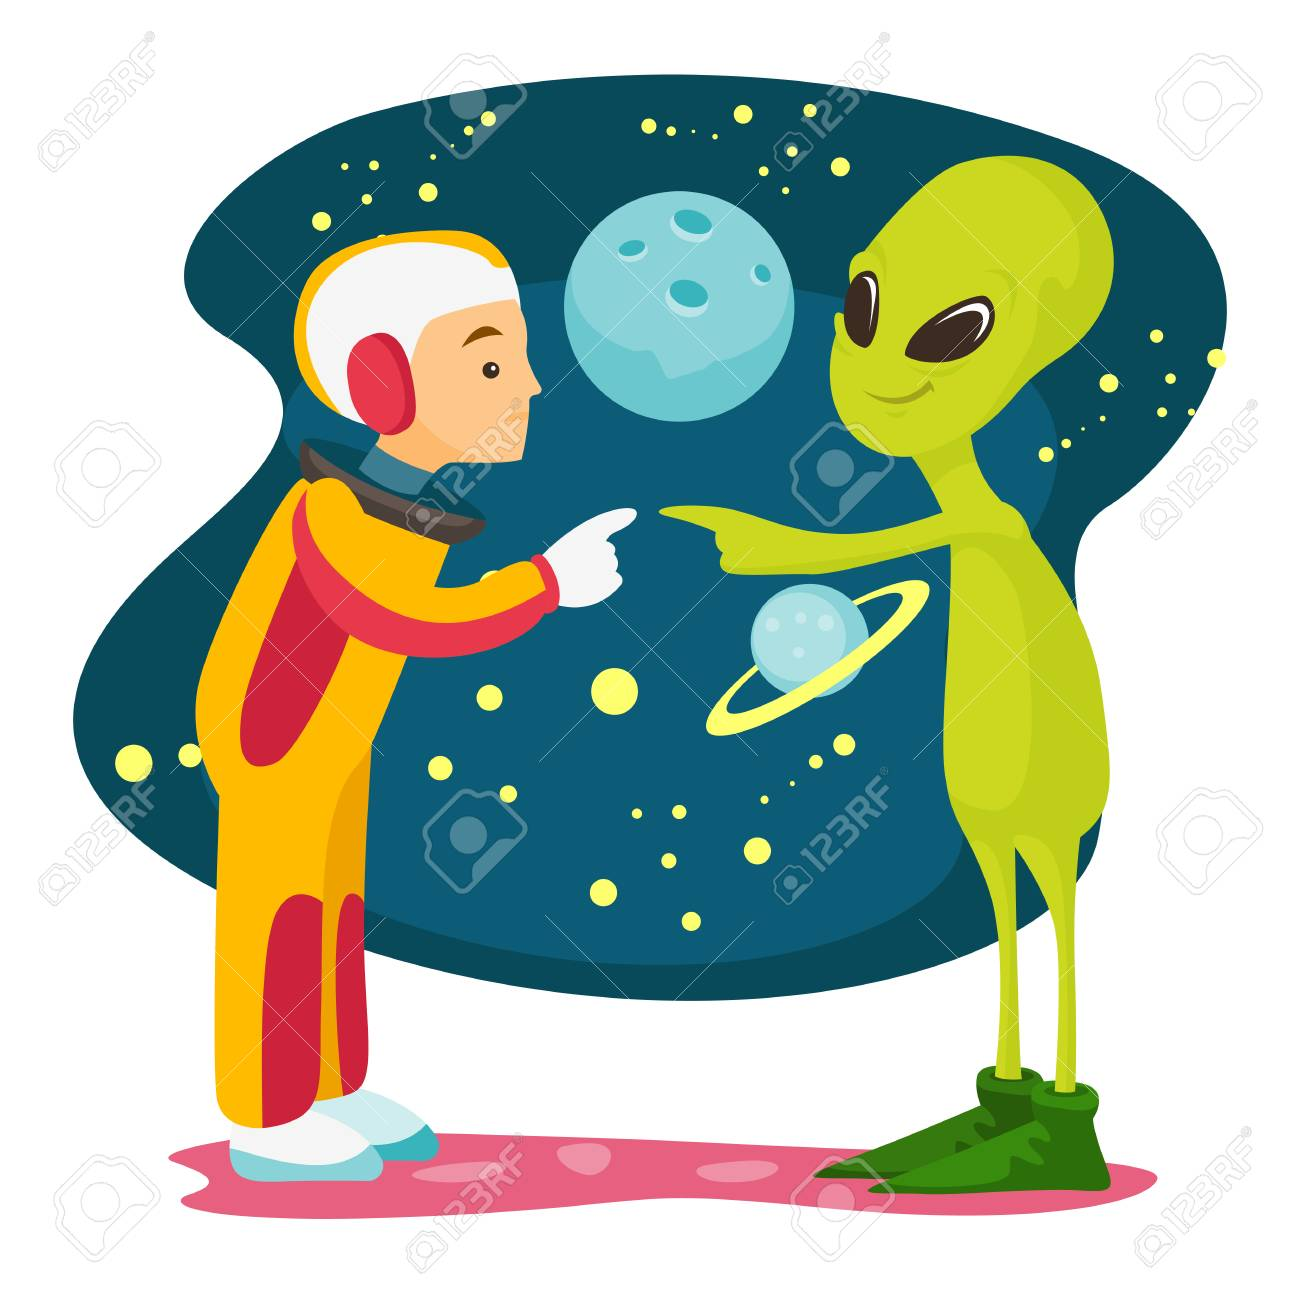 Caucasian white space exploration astronaut and green alien meet for the first time. - 96104100